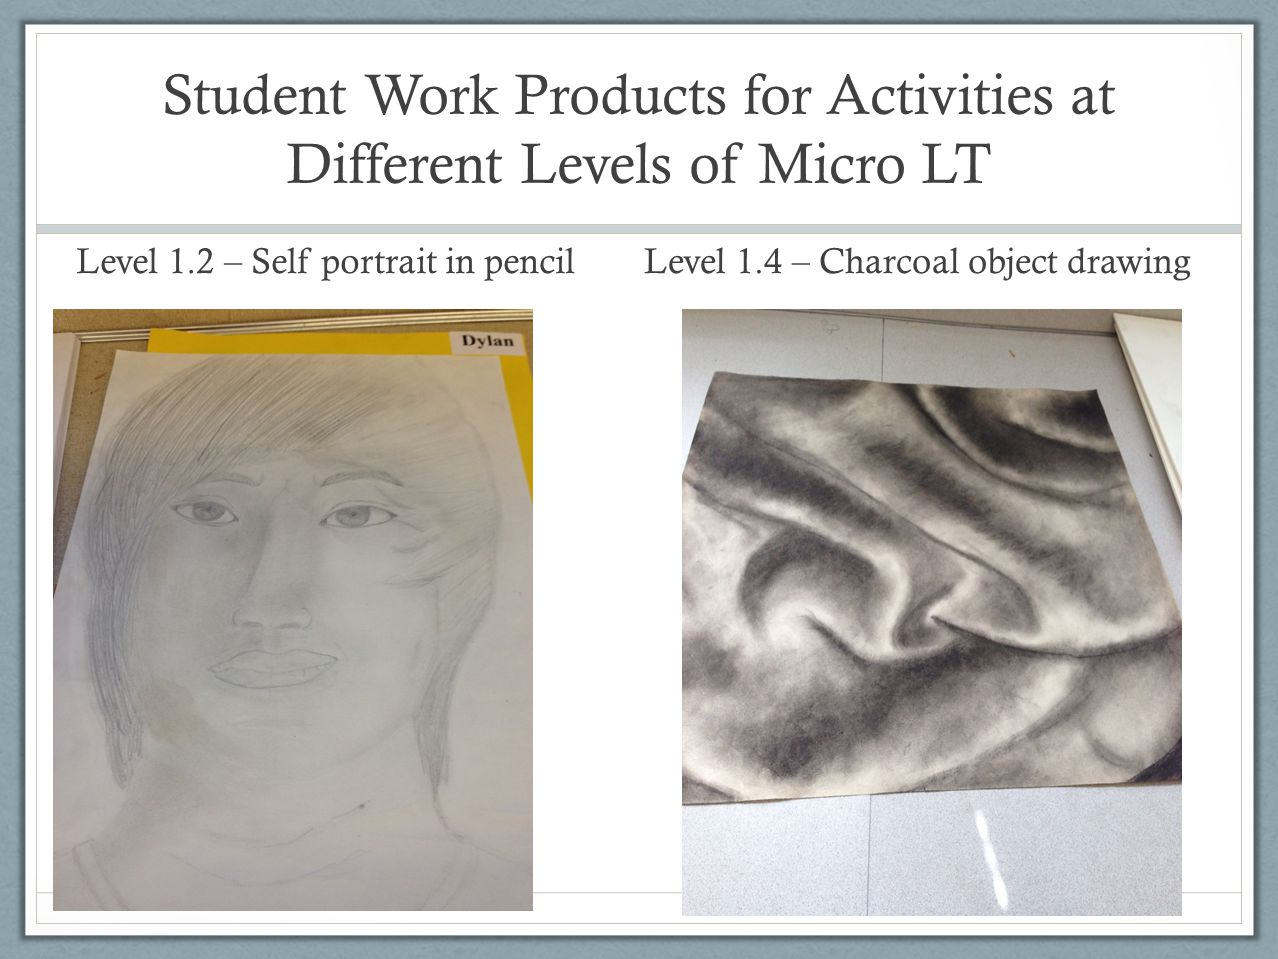 Student Work Products for Activities at Different Levels of Micro LT Level 1.2 – Self portrait in pencil Level 1.4 – Charcoal object drawing